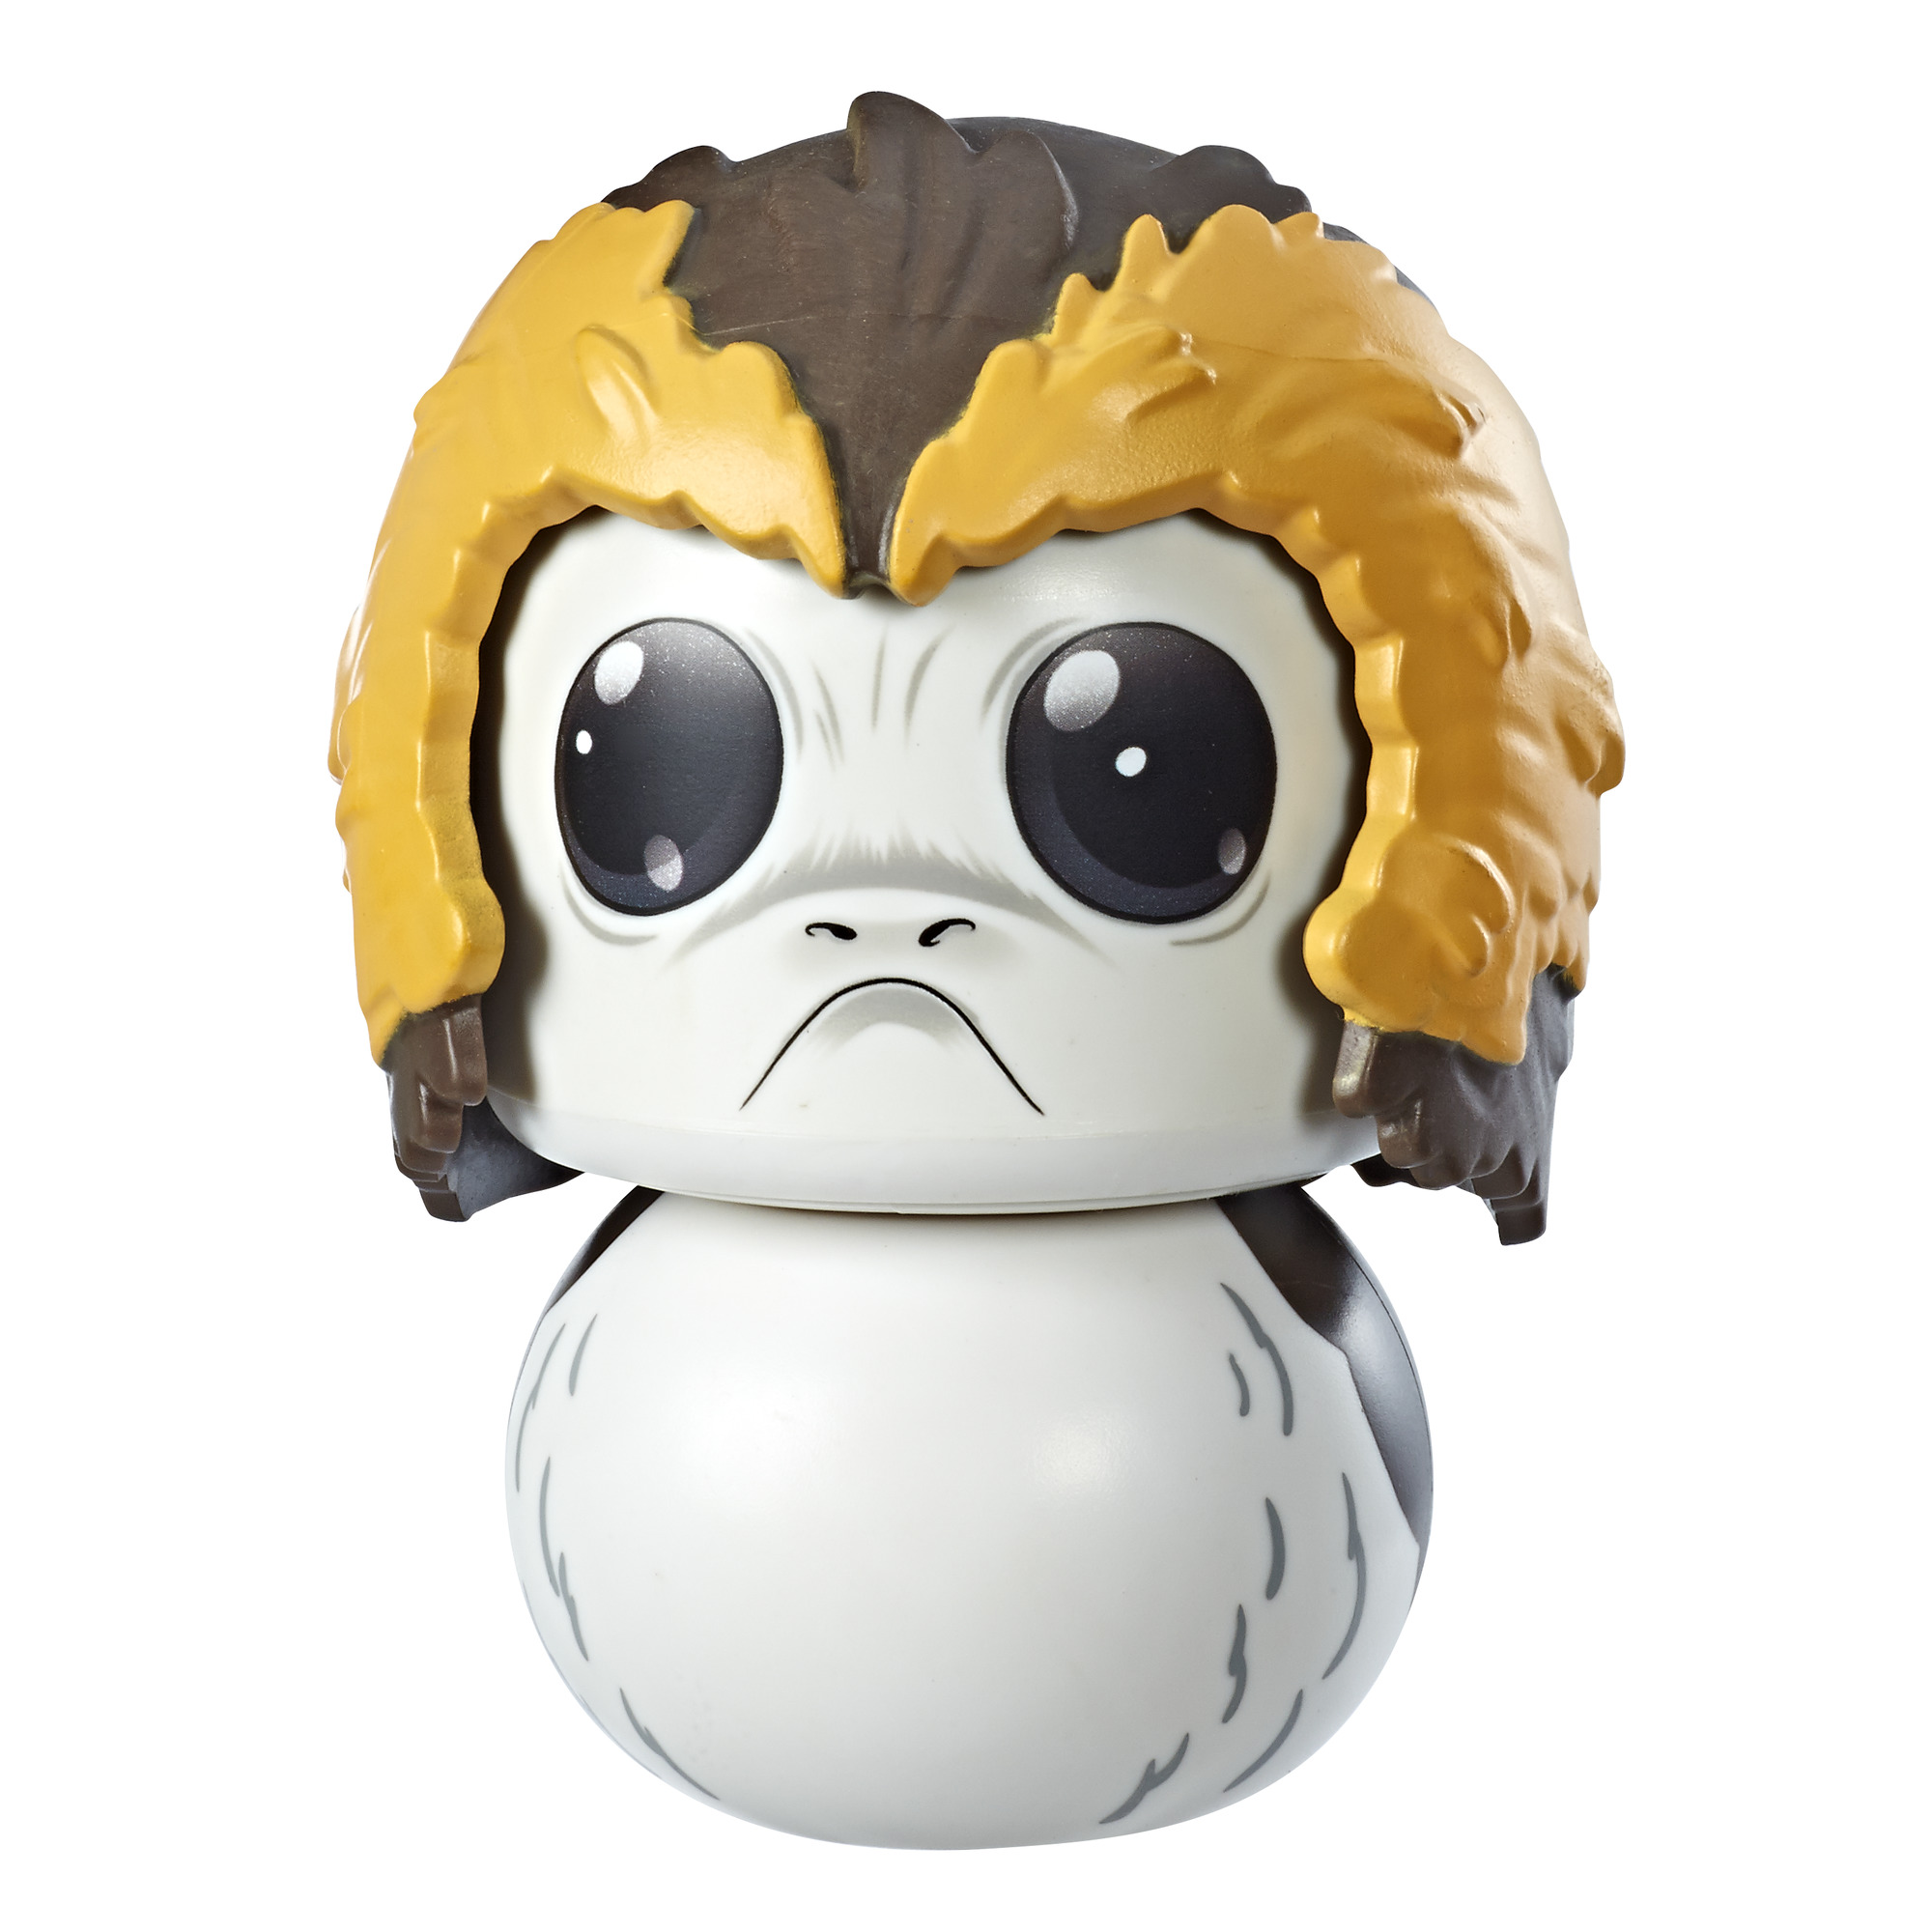 TLJ Mighty Muggs Porg Figure 2